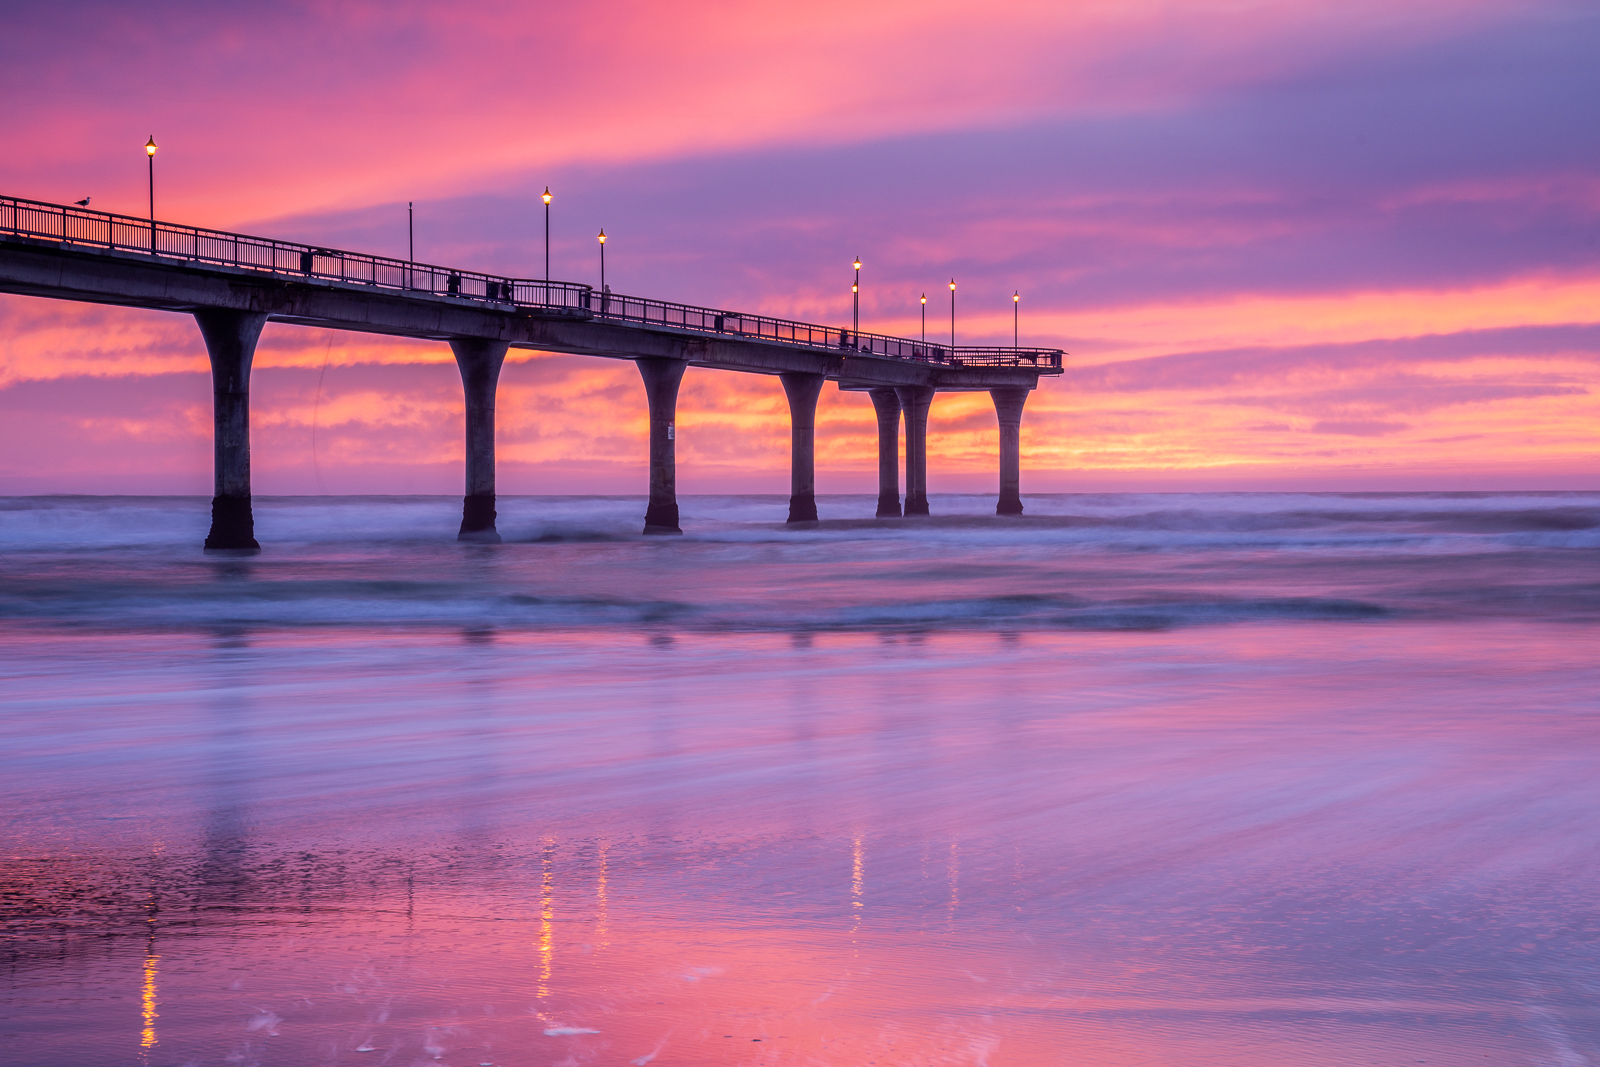 New Brighton Pier, Christchurch at 70mm